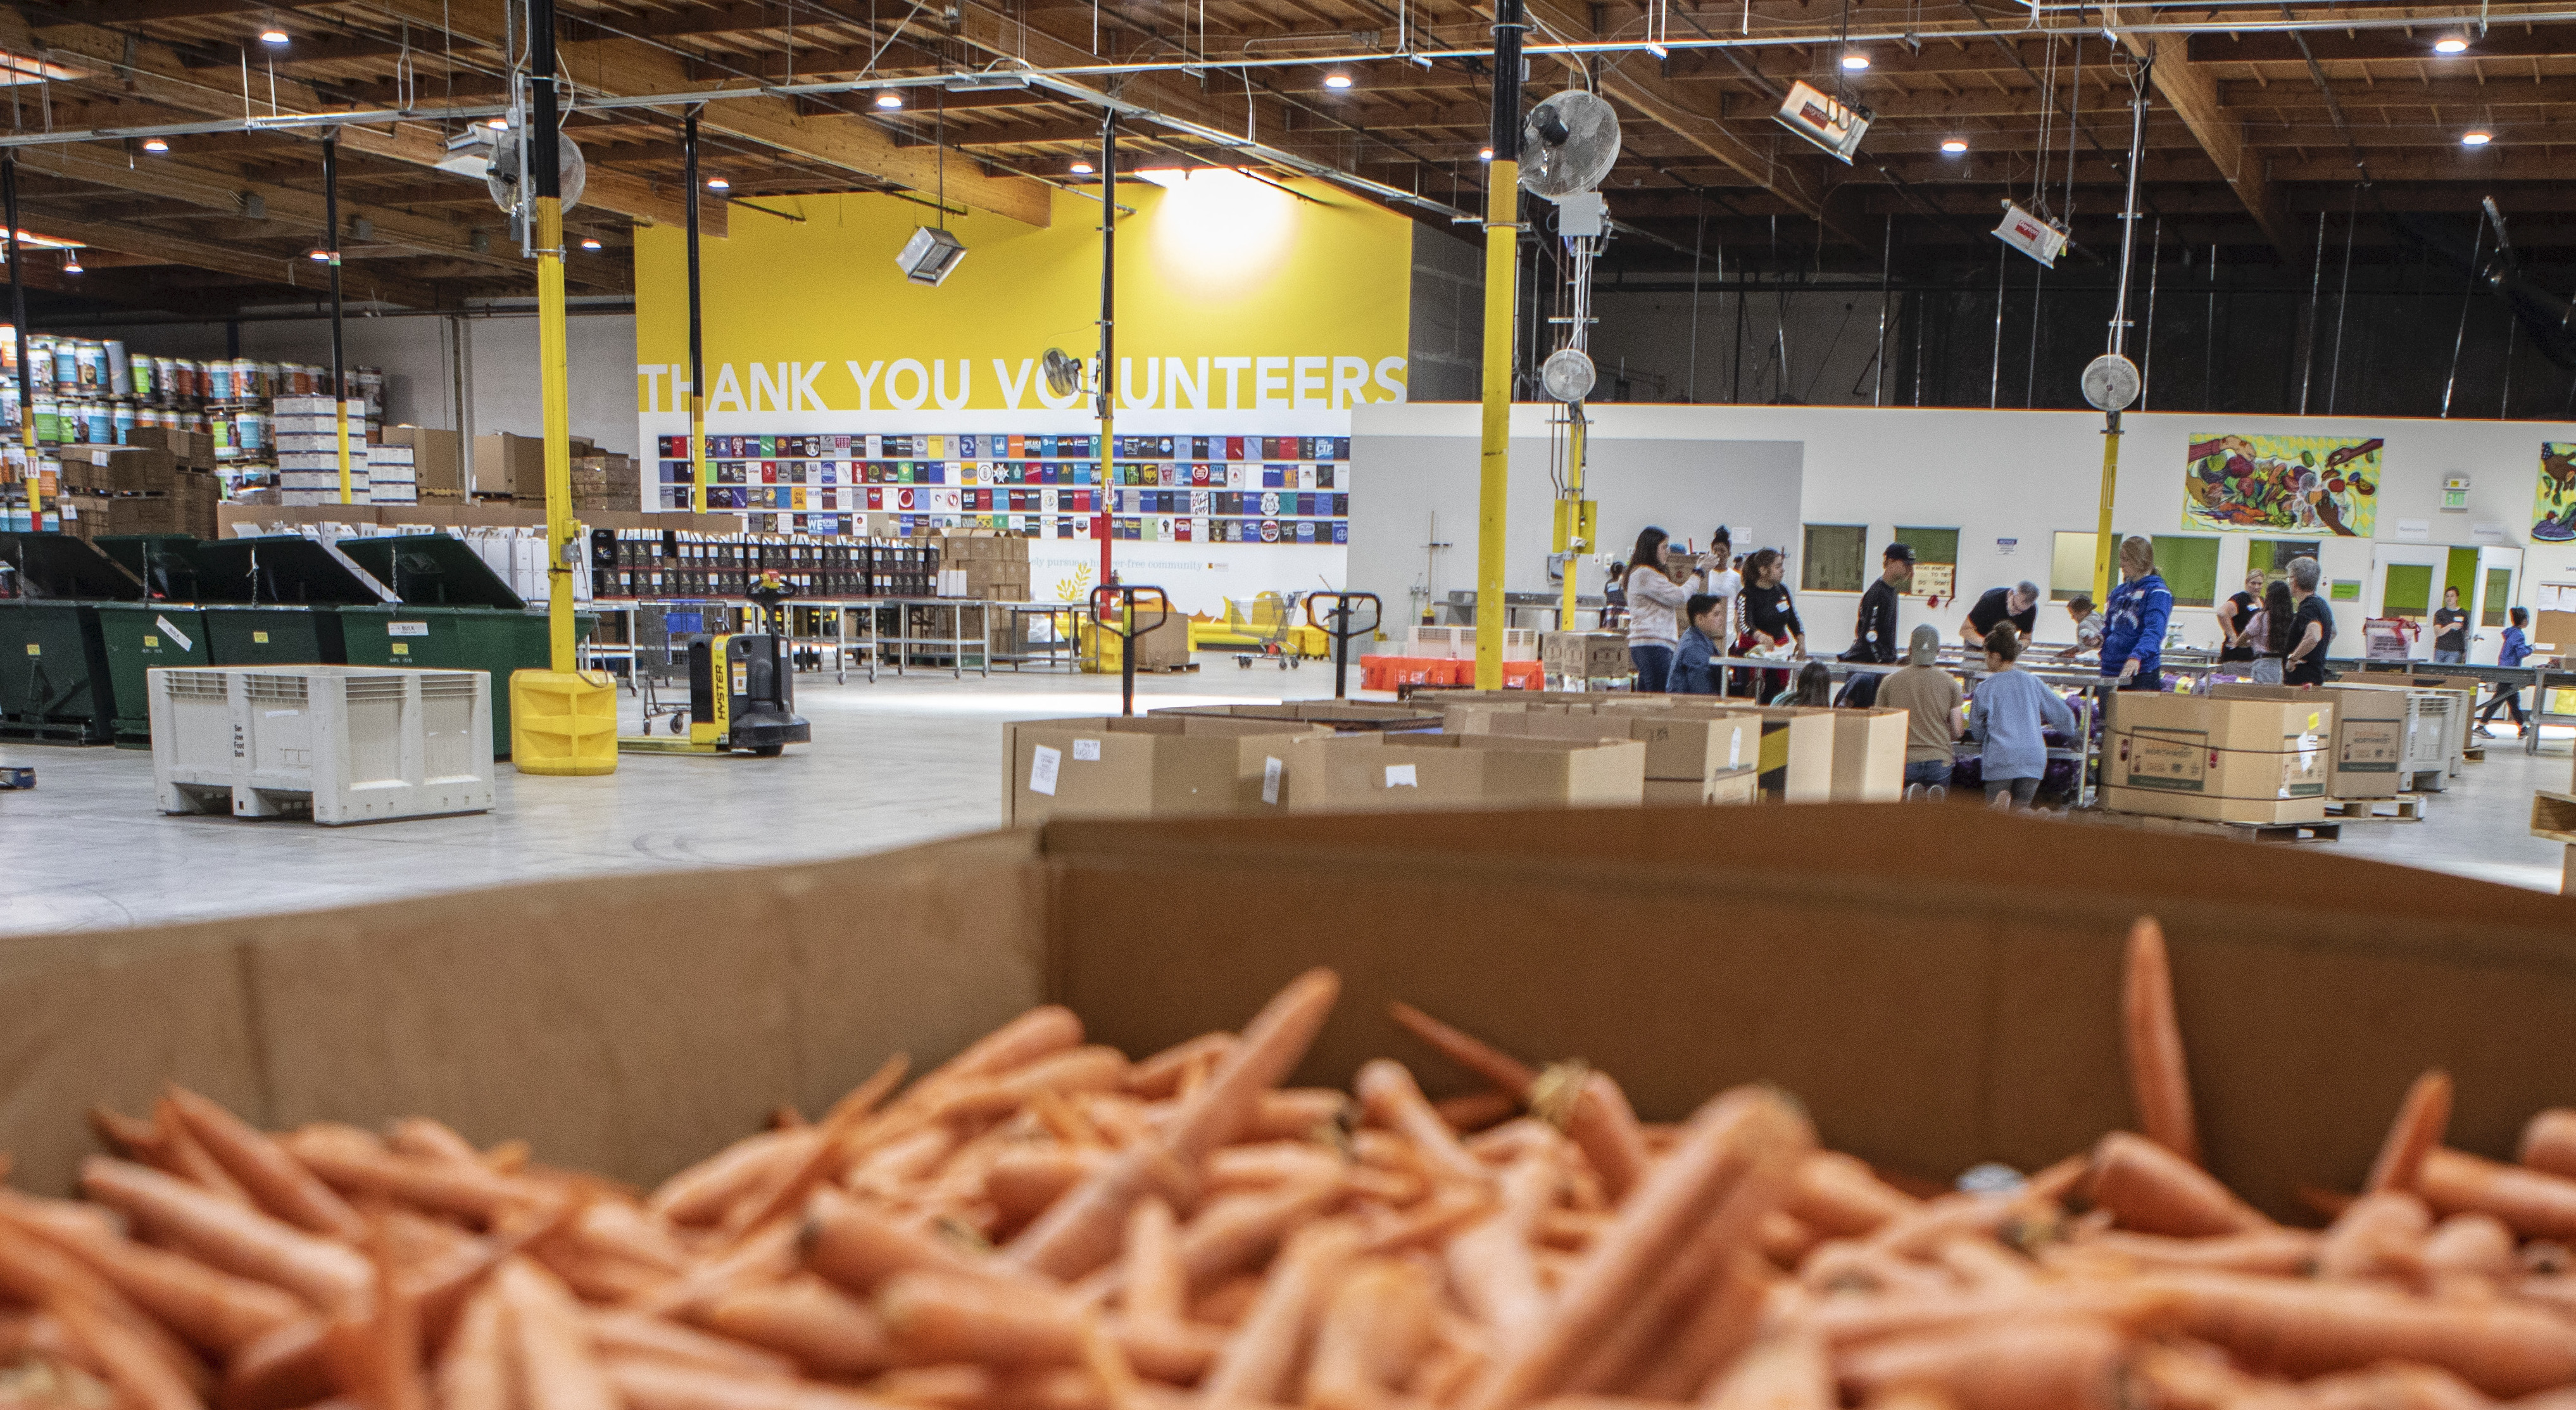 A large sign hangs over the warehouse that says, 'Thank you volunteers' in the volunteer center at the Alameda County Community Food Bank on July 25, 2019. The food bank relies on roughly 100 volunteers every day to package thousands of meals to be distributed. Photo by Anne Wernikoff/CalMatters